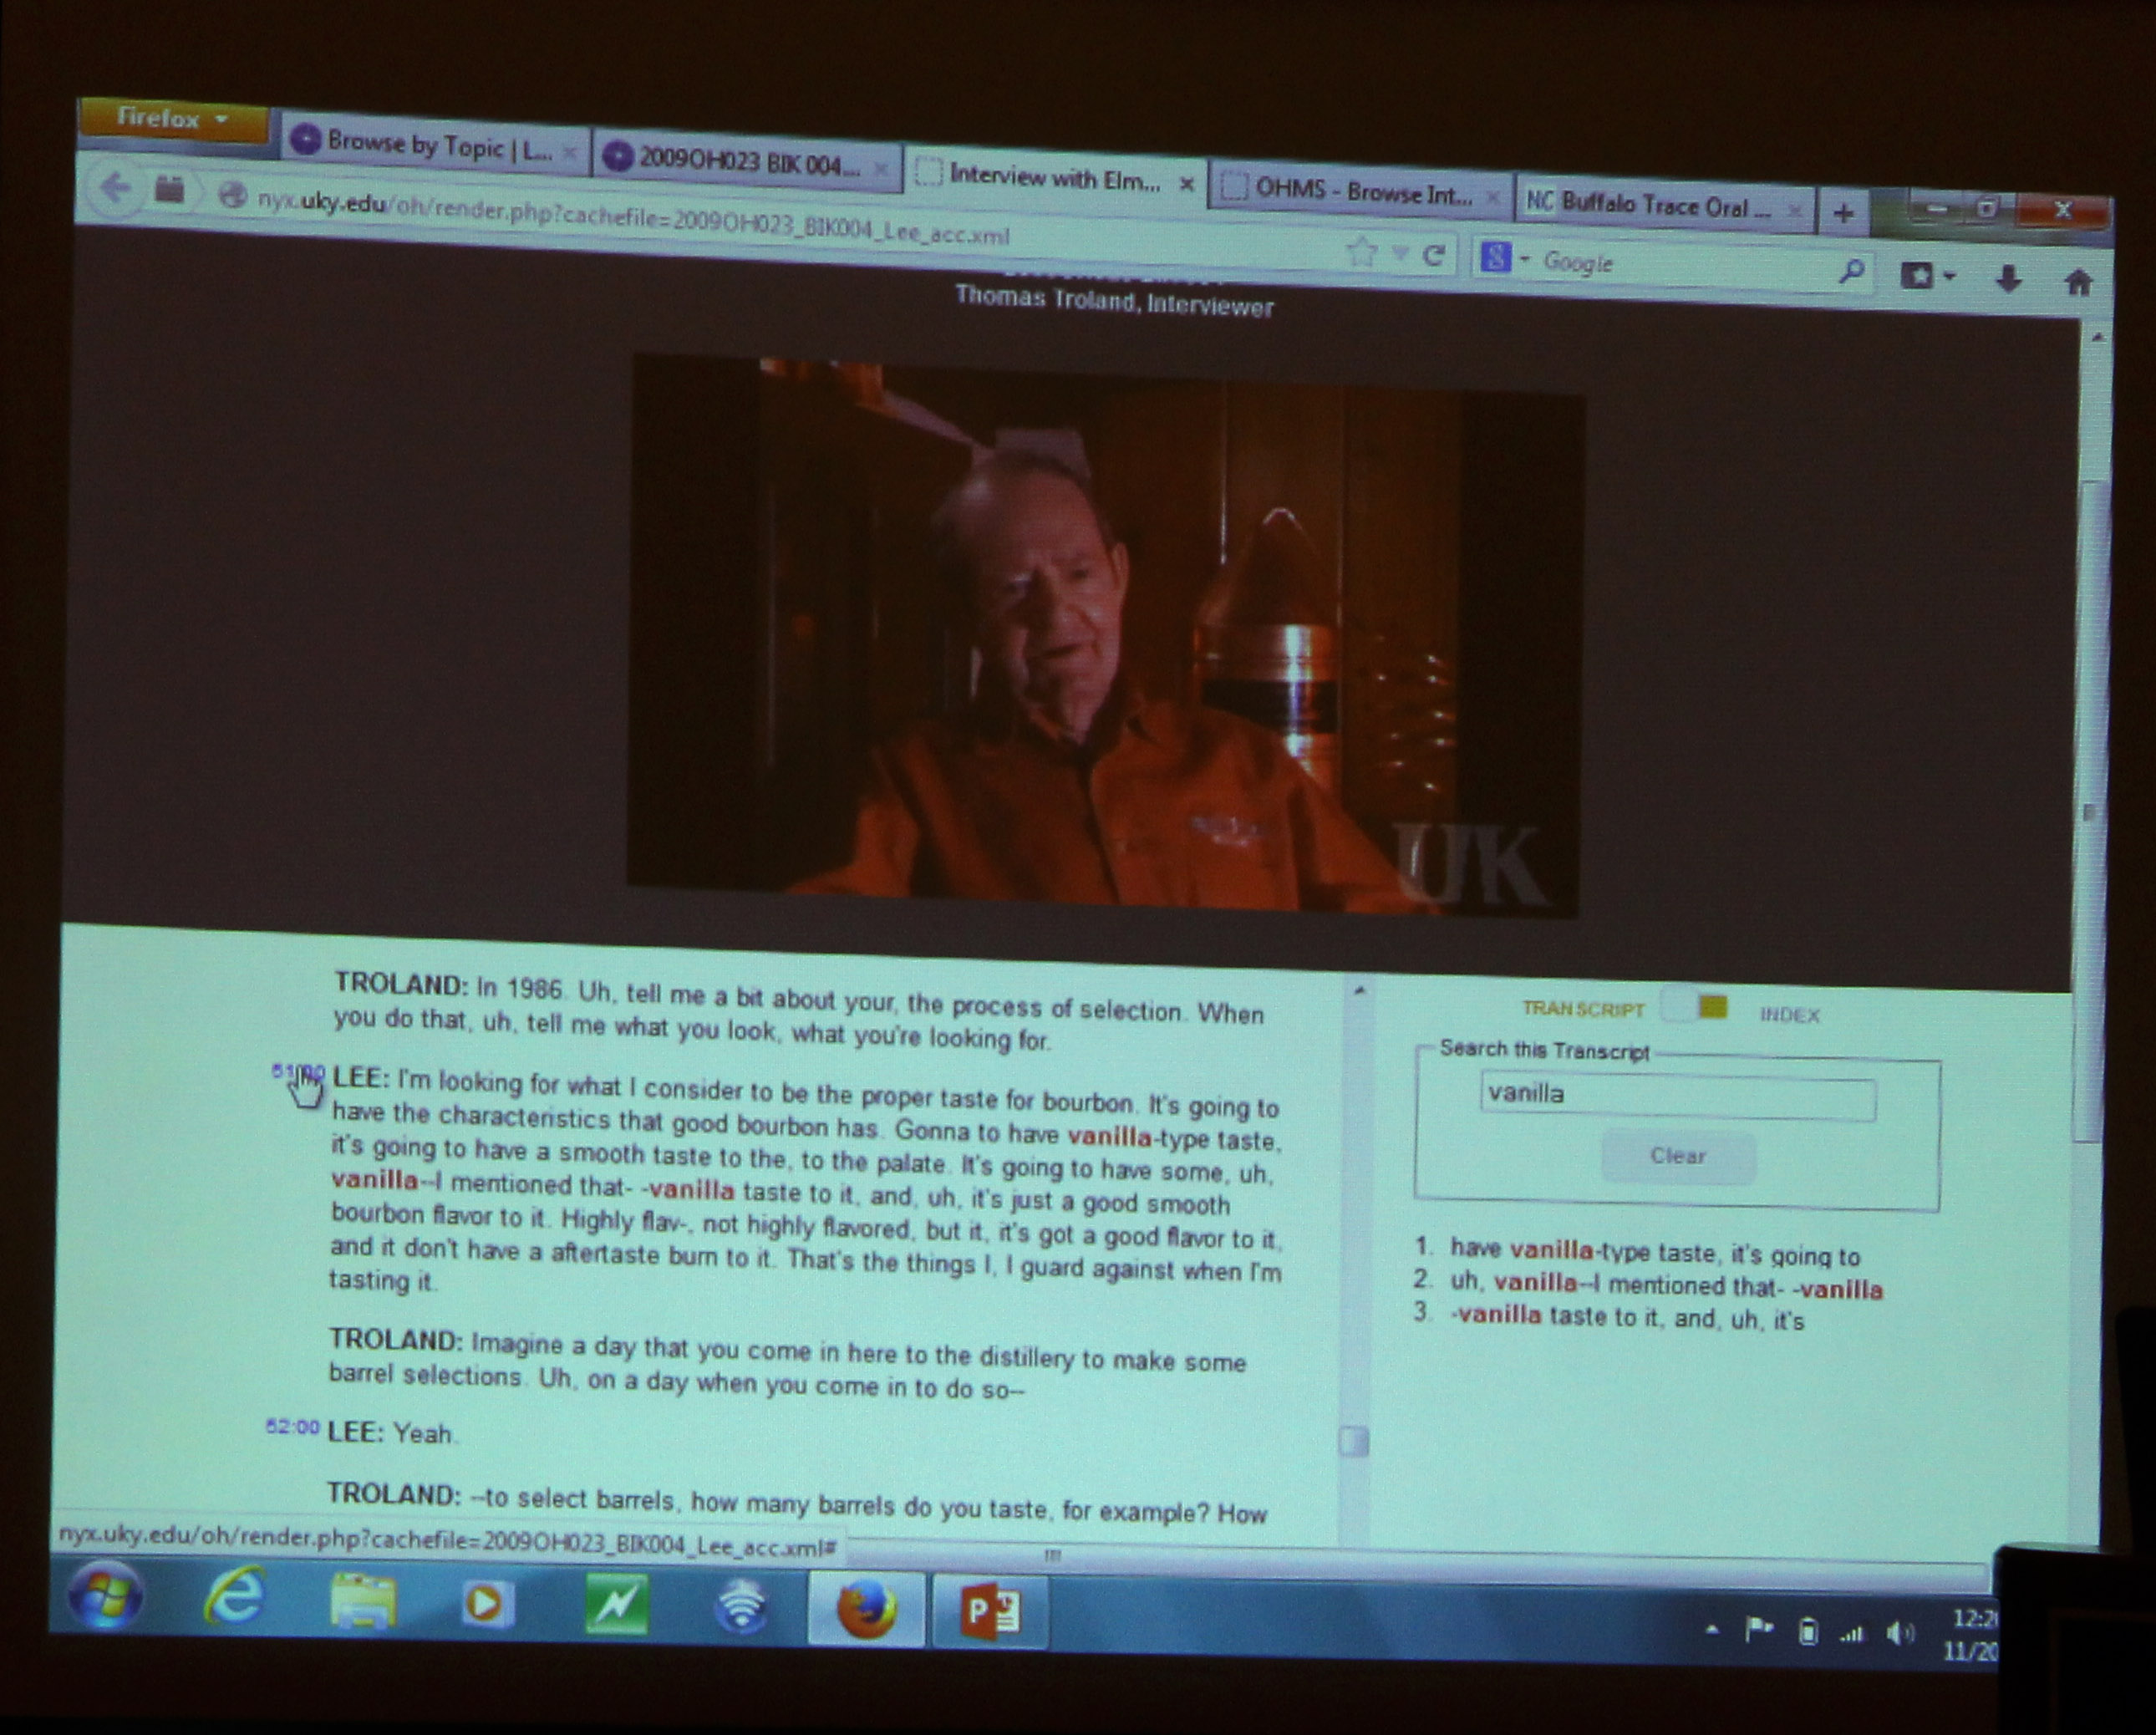 Oral history video and transcript from the Buffalo Trace Oral History project.